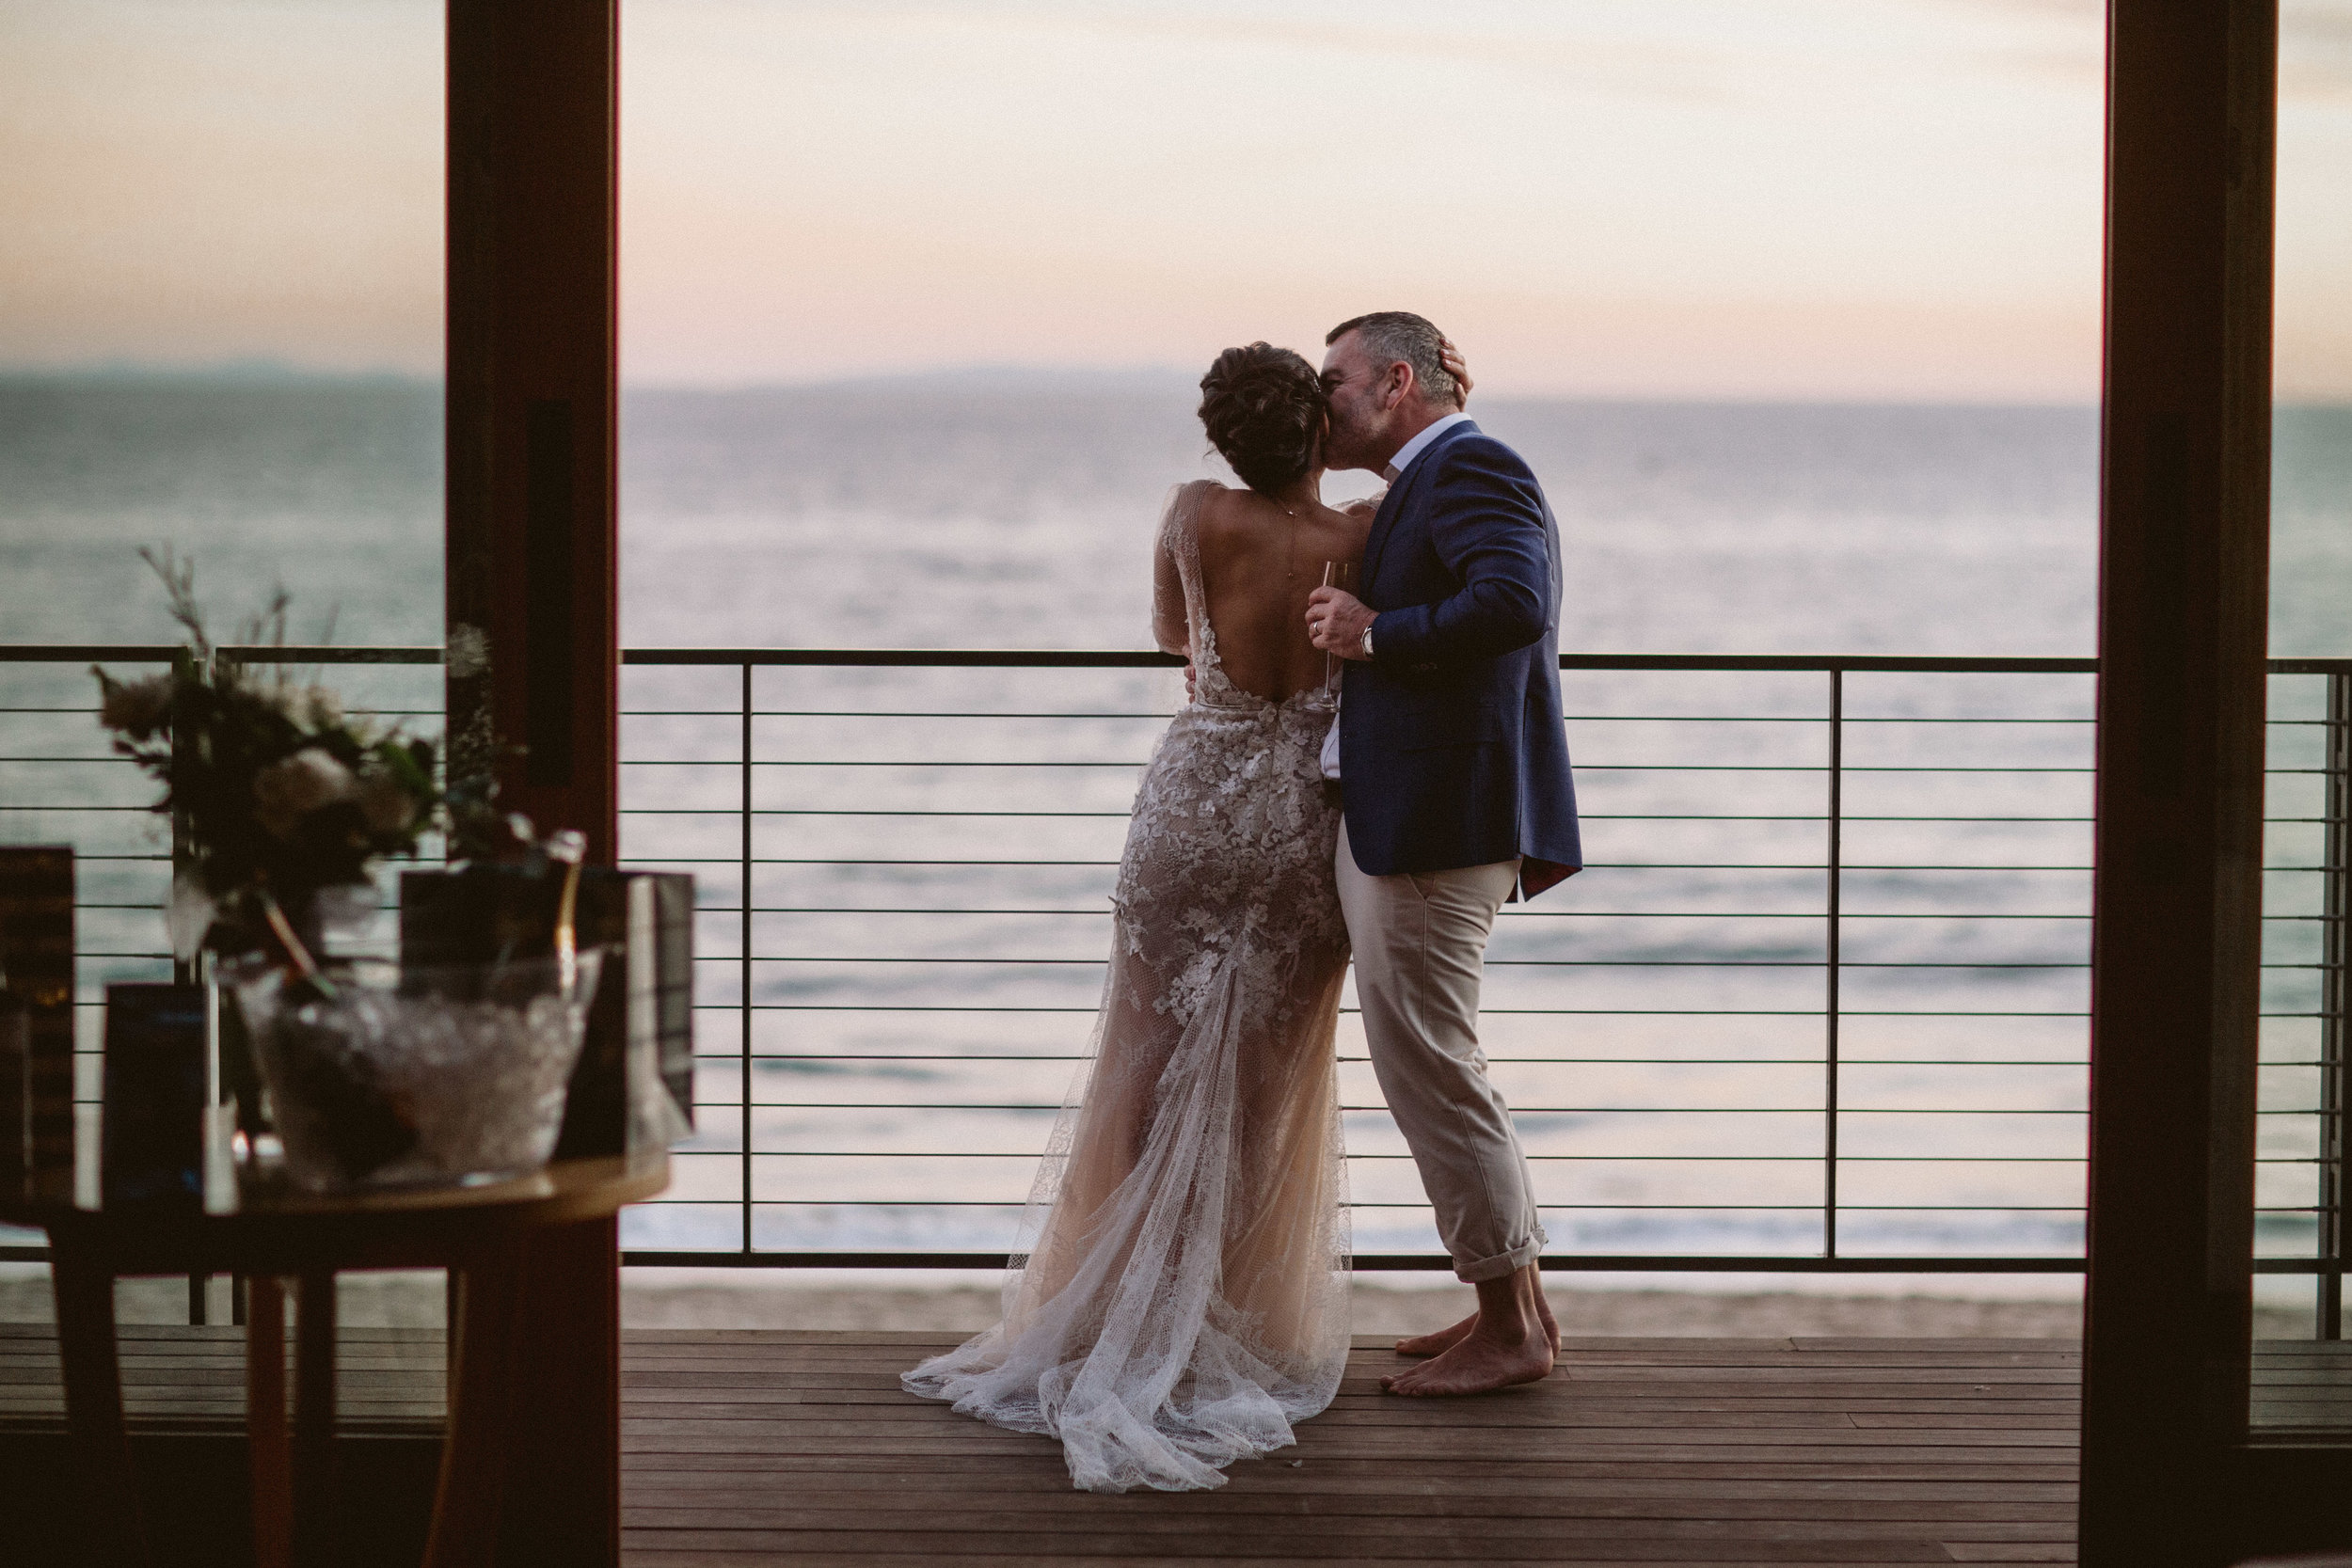 malibu nobu beach elopement photography los angeles ca